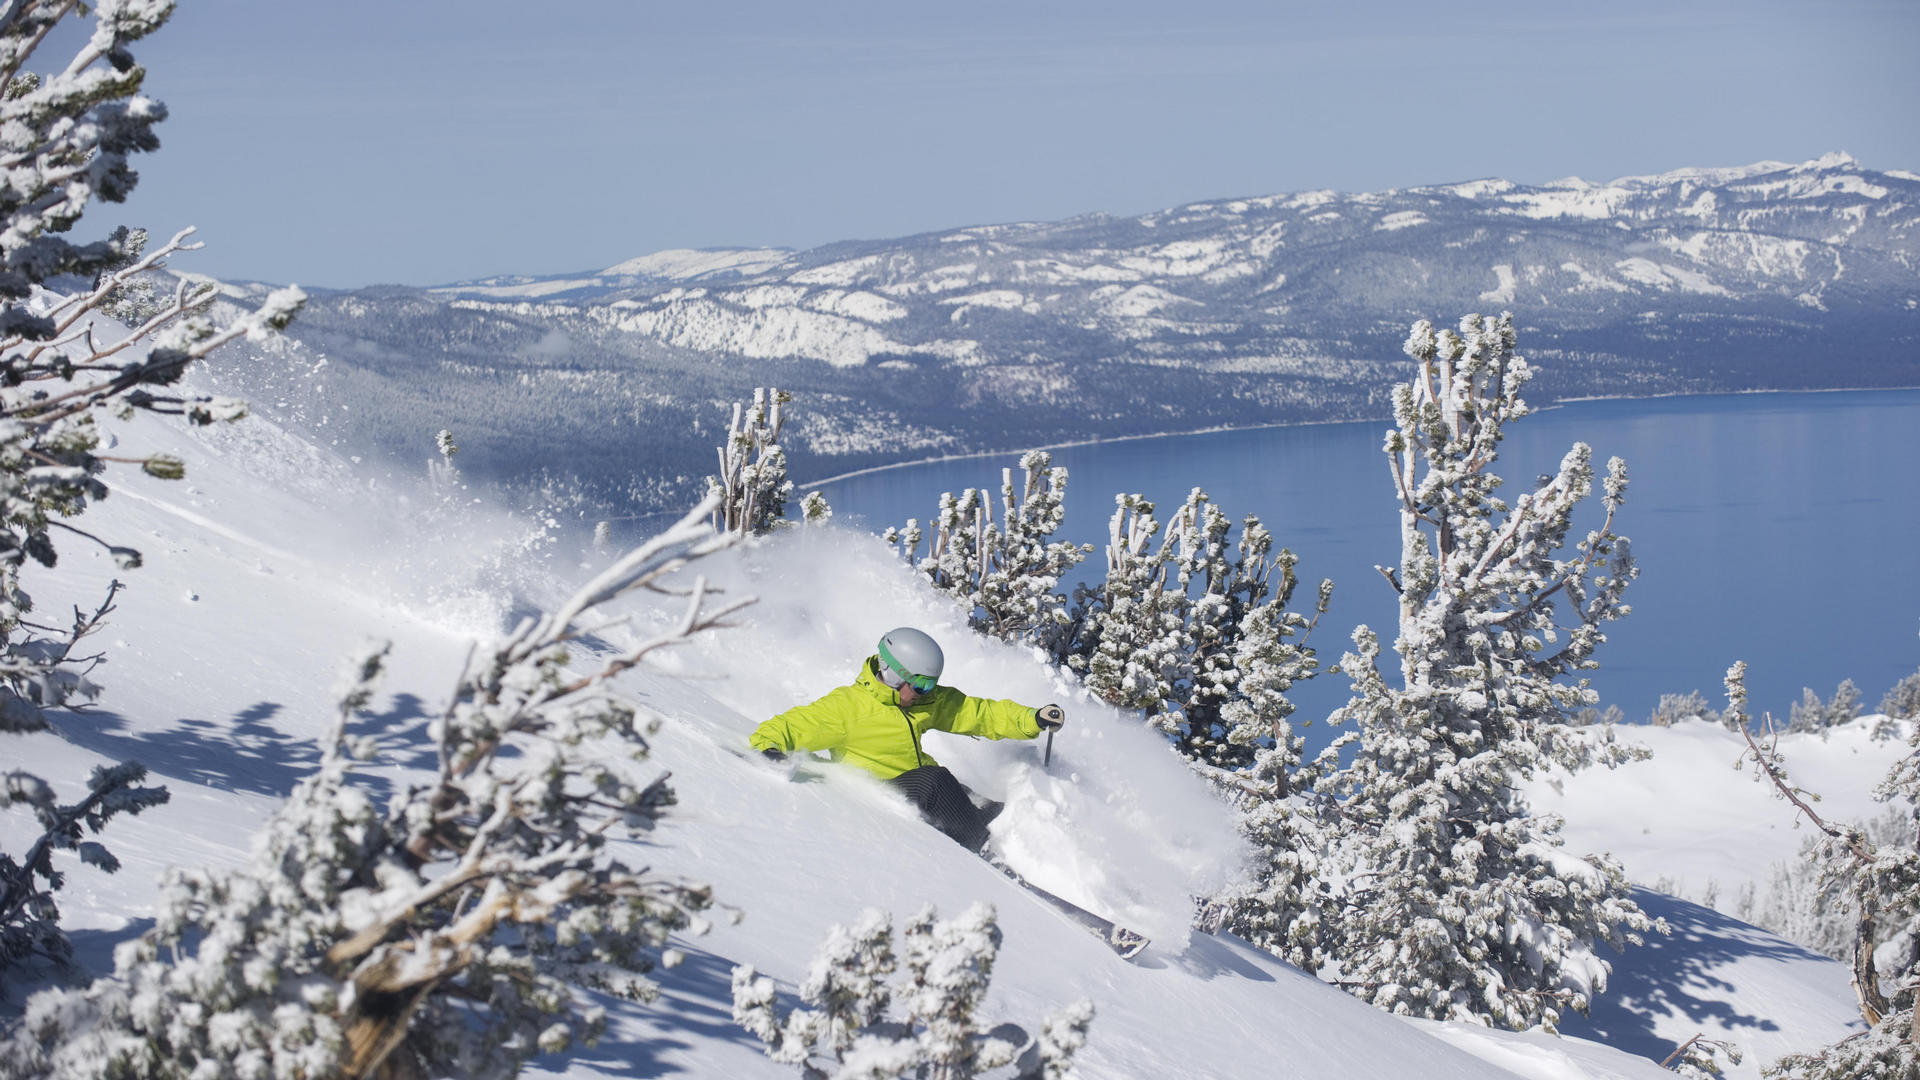 south lake tahoe winter activity